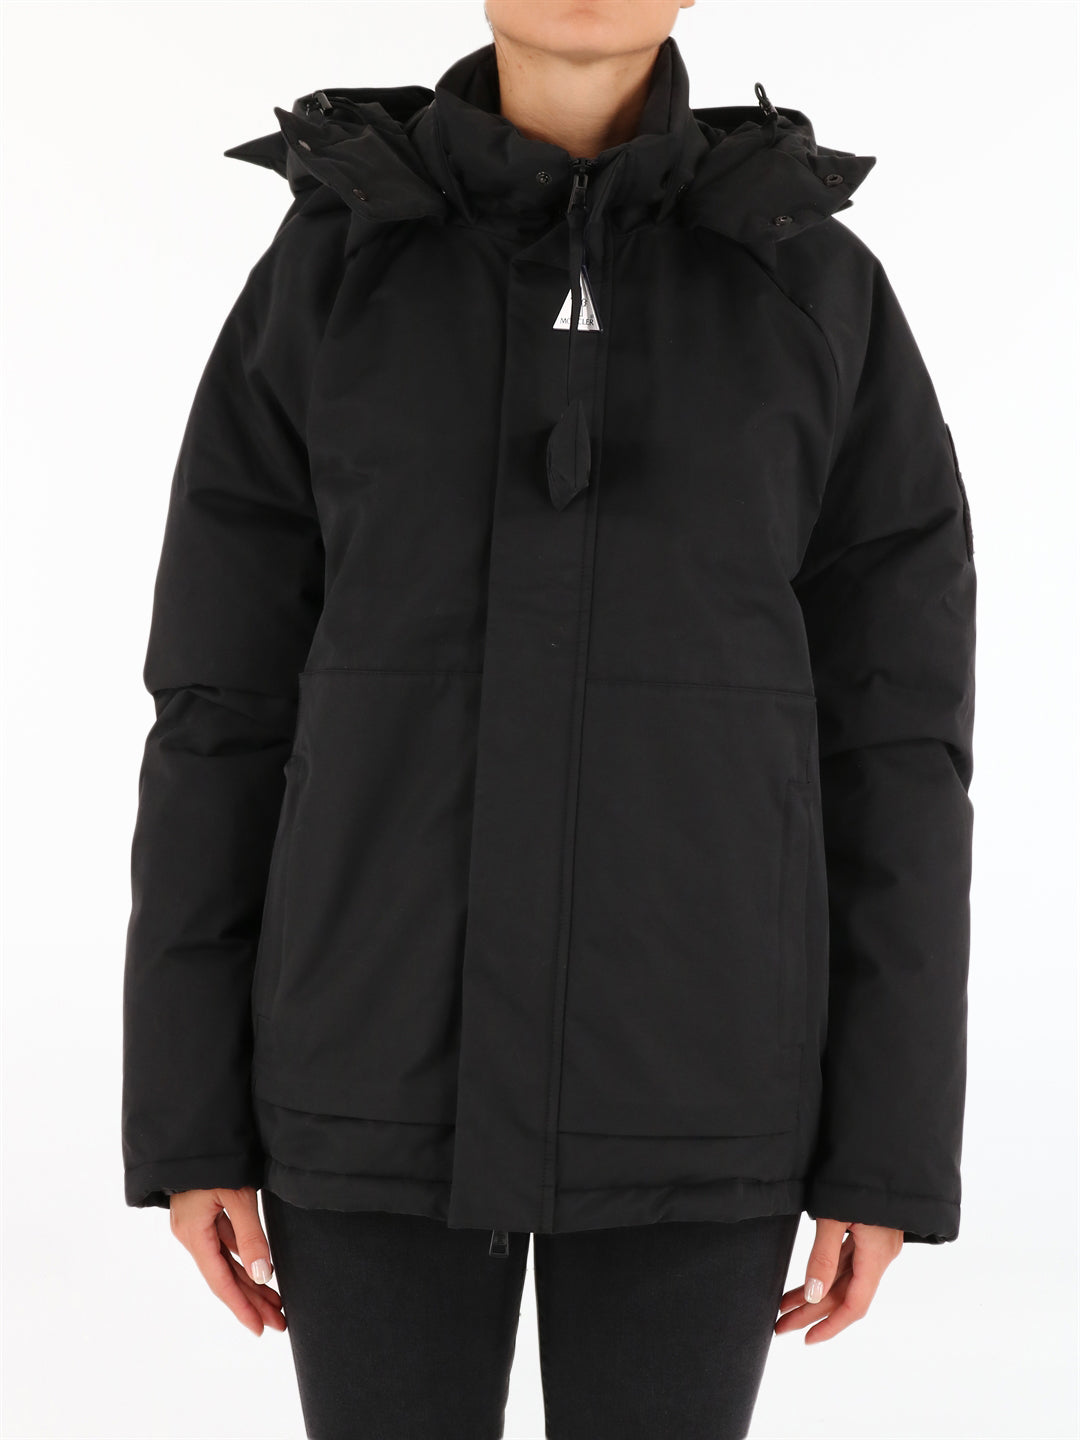 Moncler Genius MONCLER X JW ANDERSON HIGHCLERE DOWN JACKET